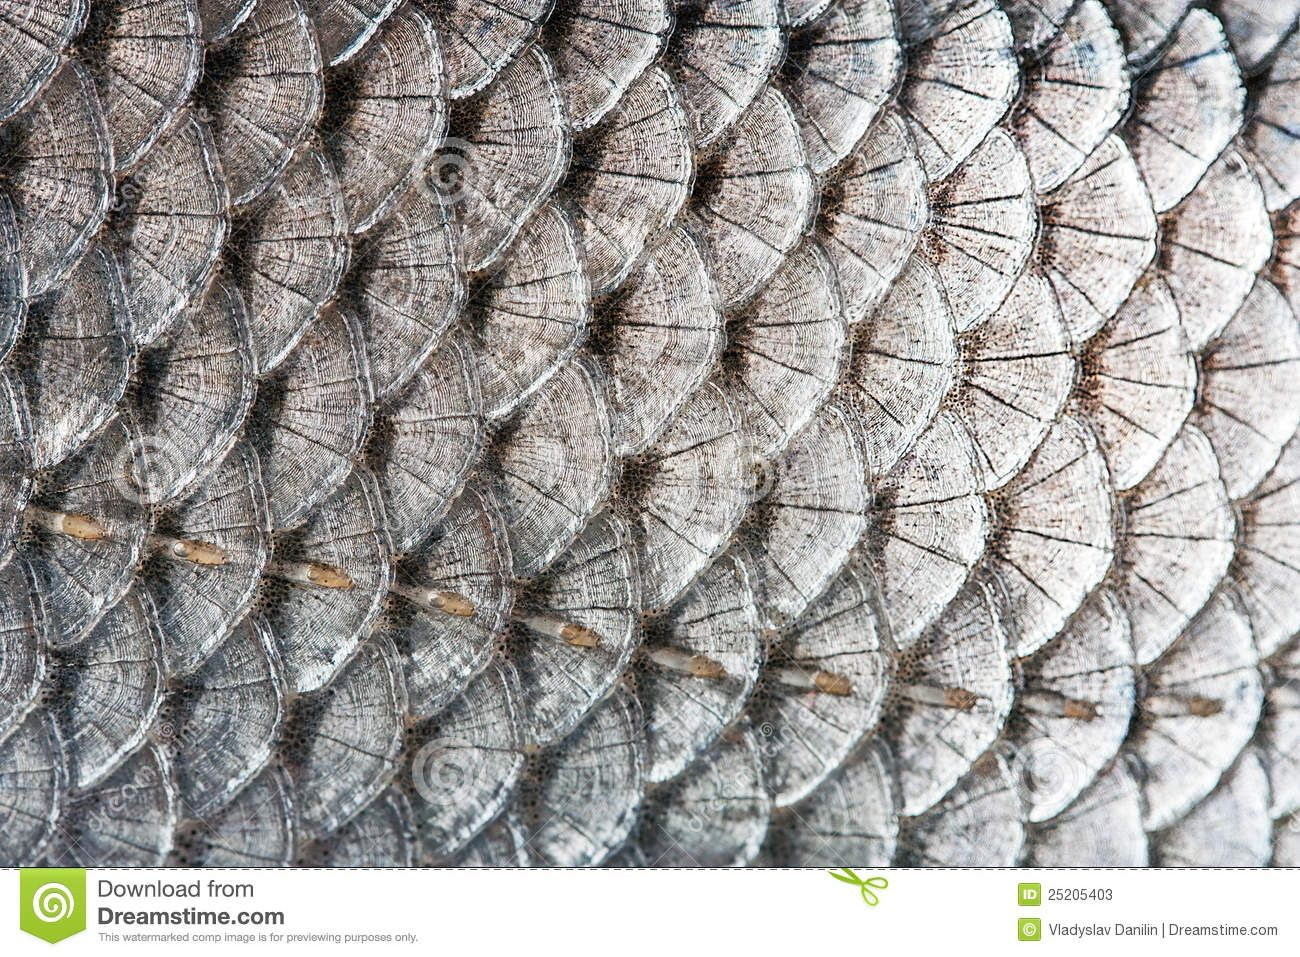 Photo About Texture Scales Of Fish Silver Background Image Of Creature Fresh Catch 25205403 Silver Background Animals Images Fish Stock